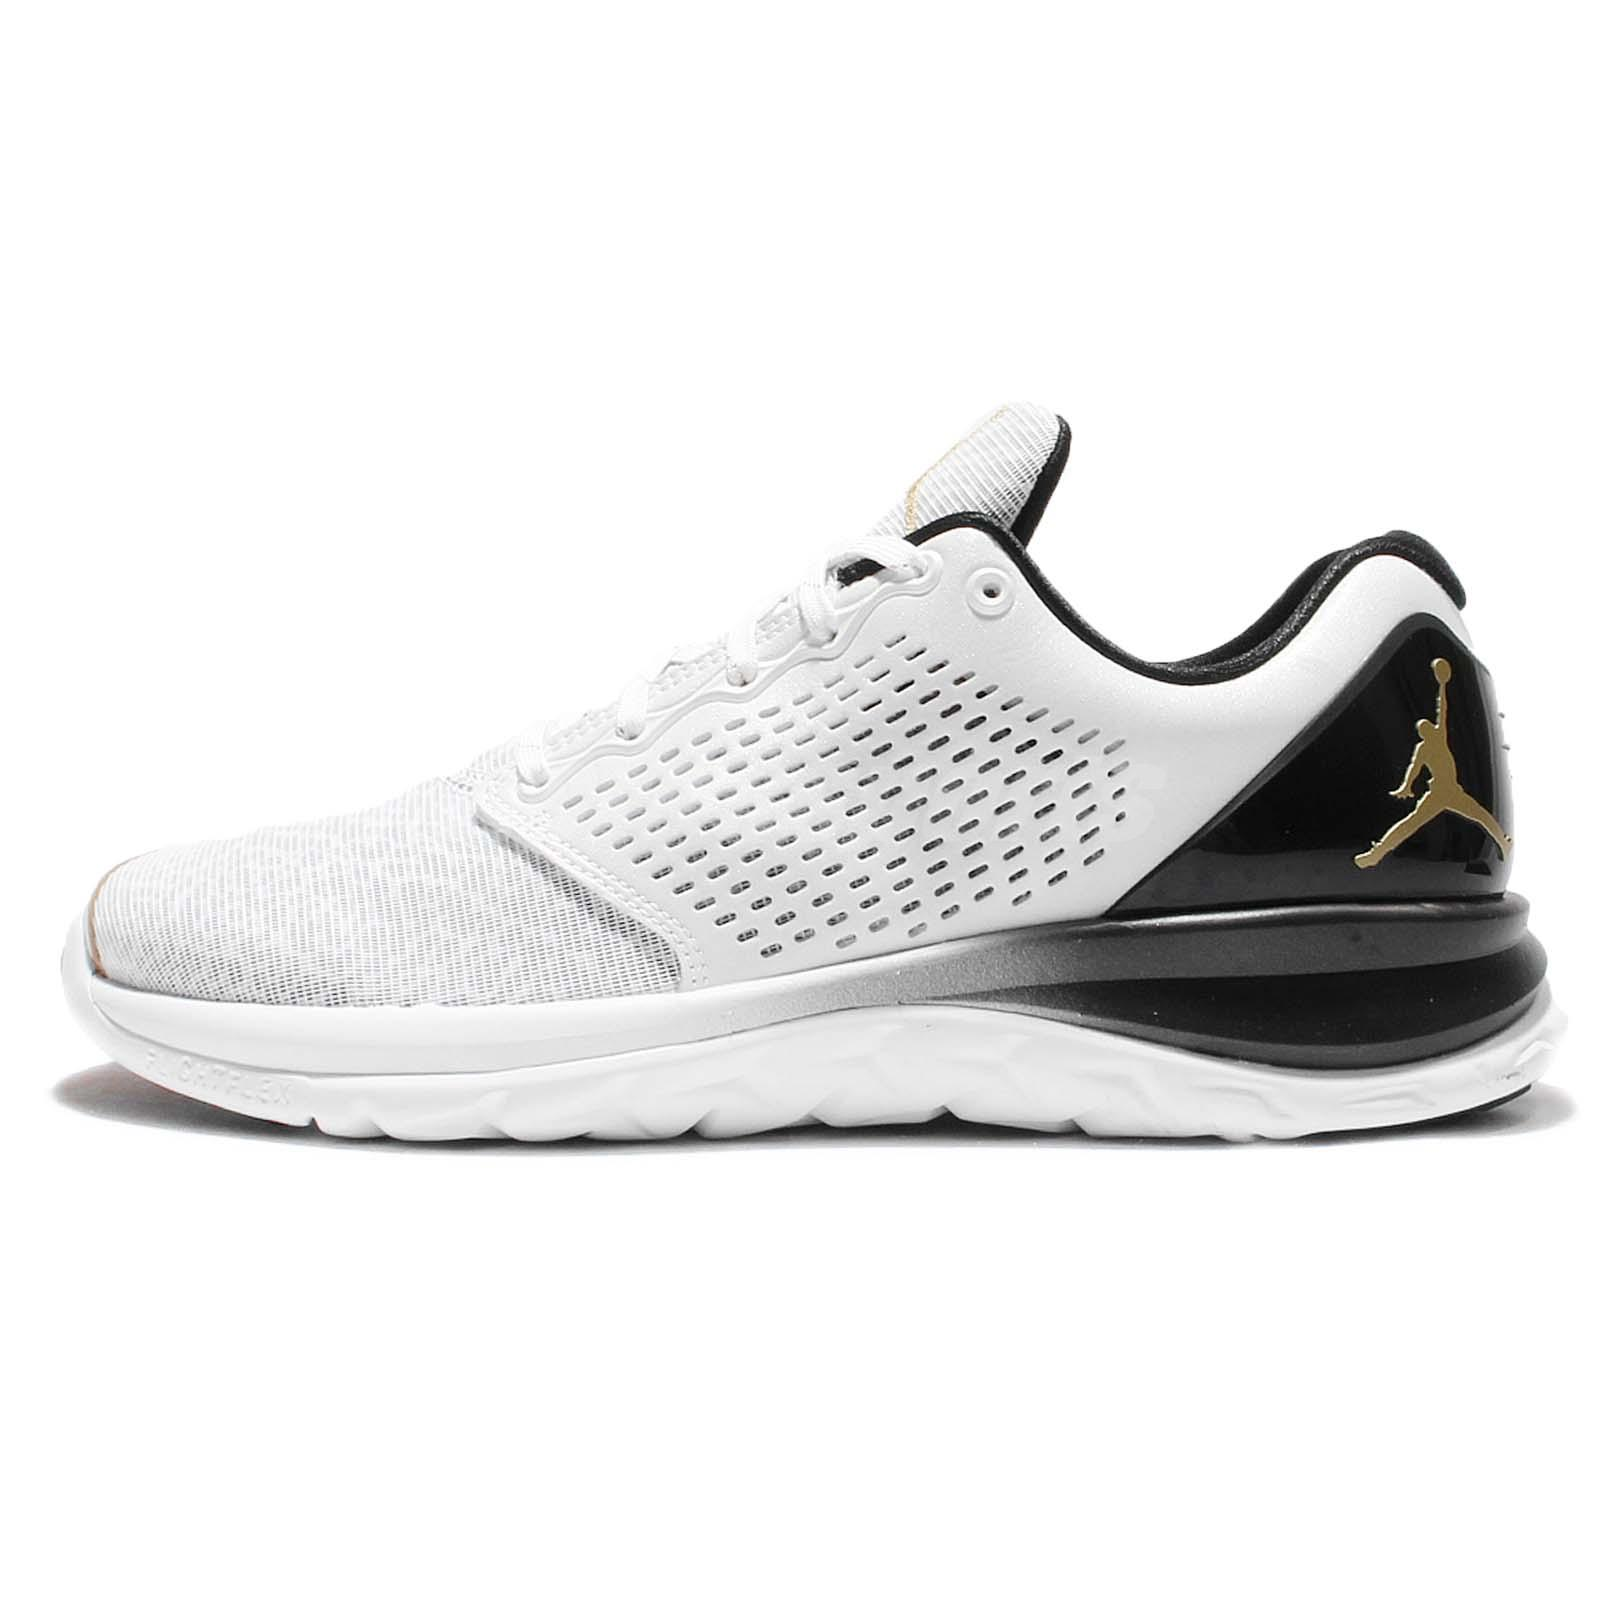 e375124a0f8f nike jordan trainer st prem premium white gold mens cross training 843732  103. jordan trainer 1 black white air jordans release ...